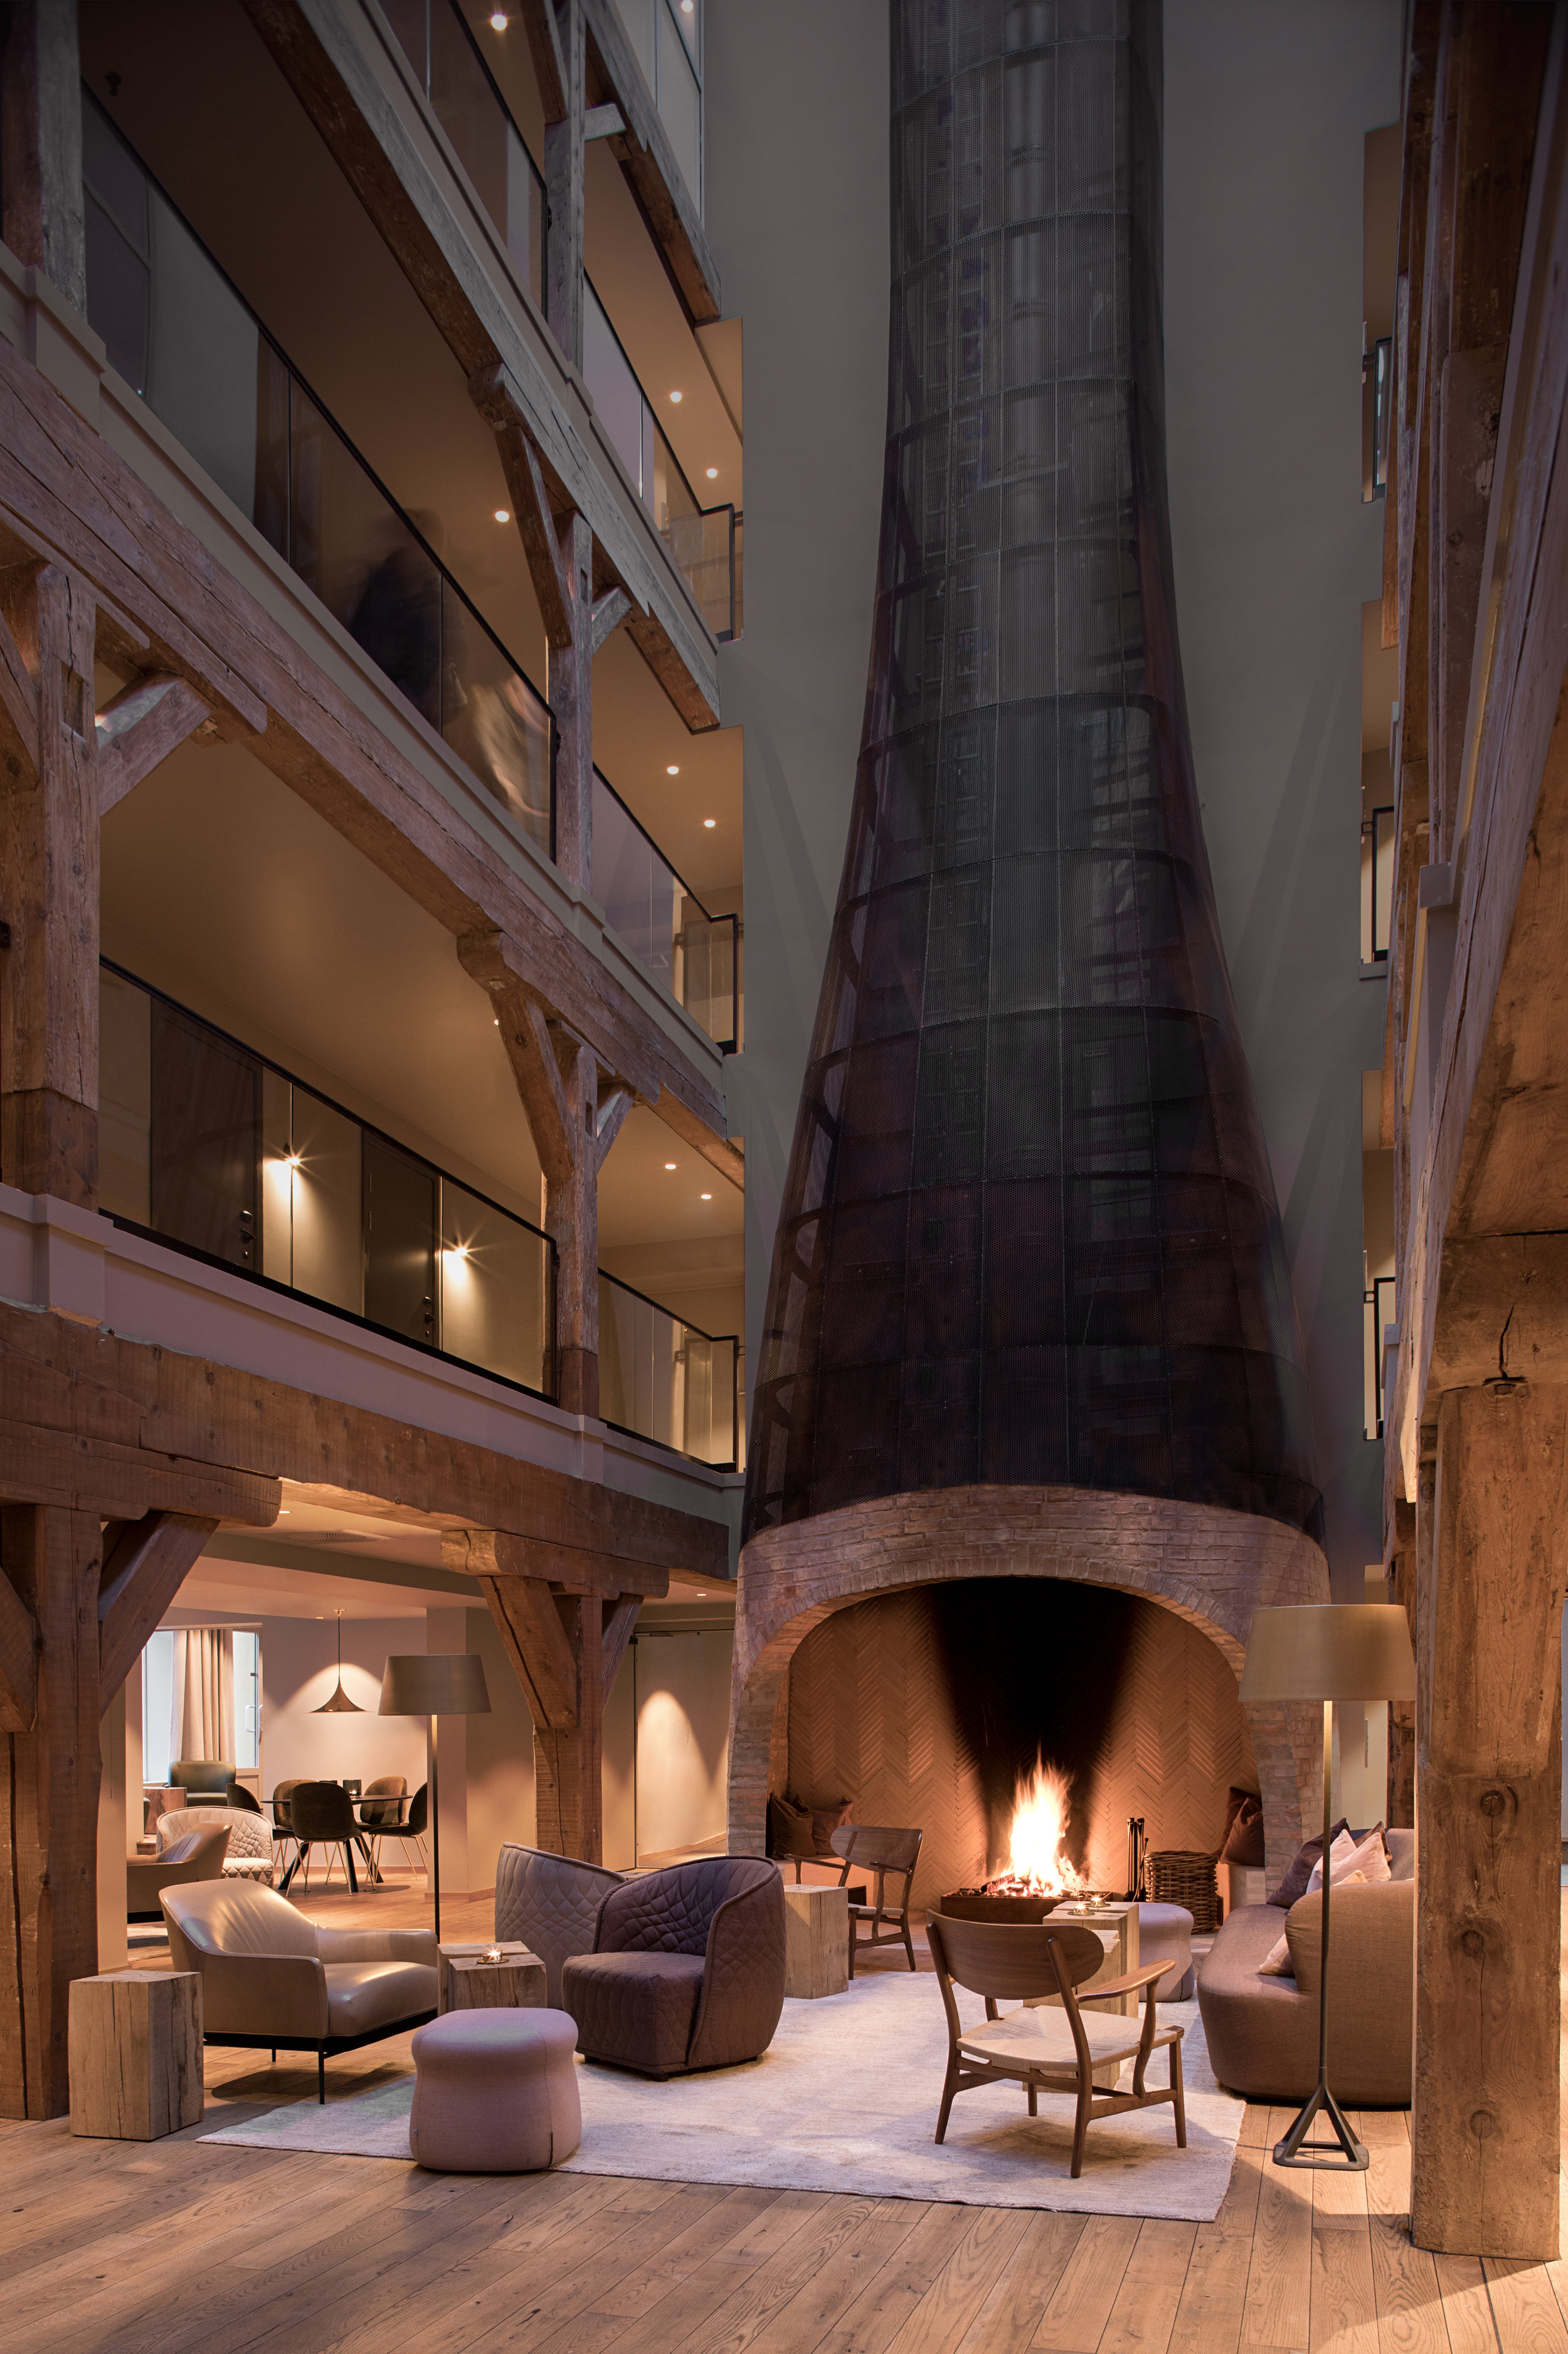 Hotel Brosundet Ålesund Norway, beautiful Scandinavian Fireplace, brick and herringbone wood by GARDE. Mads Emil Garde